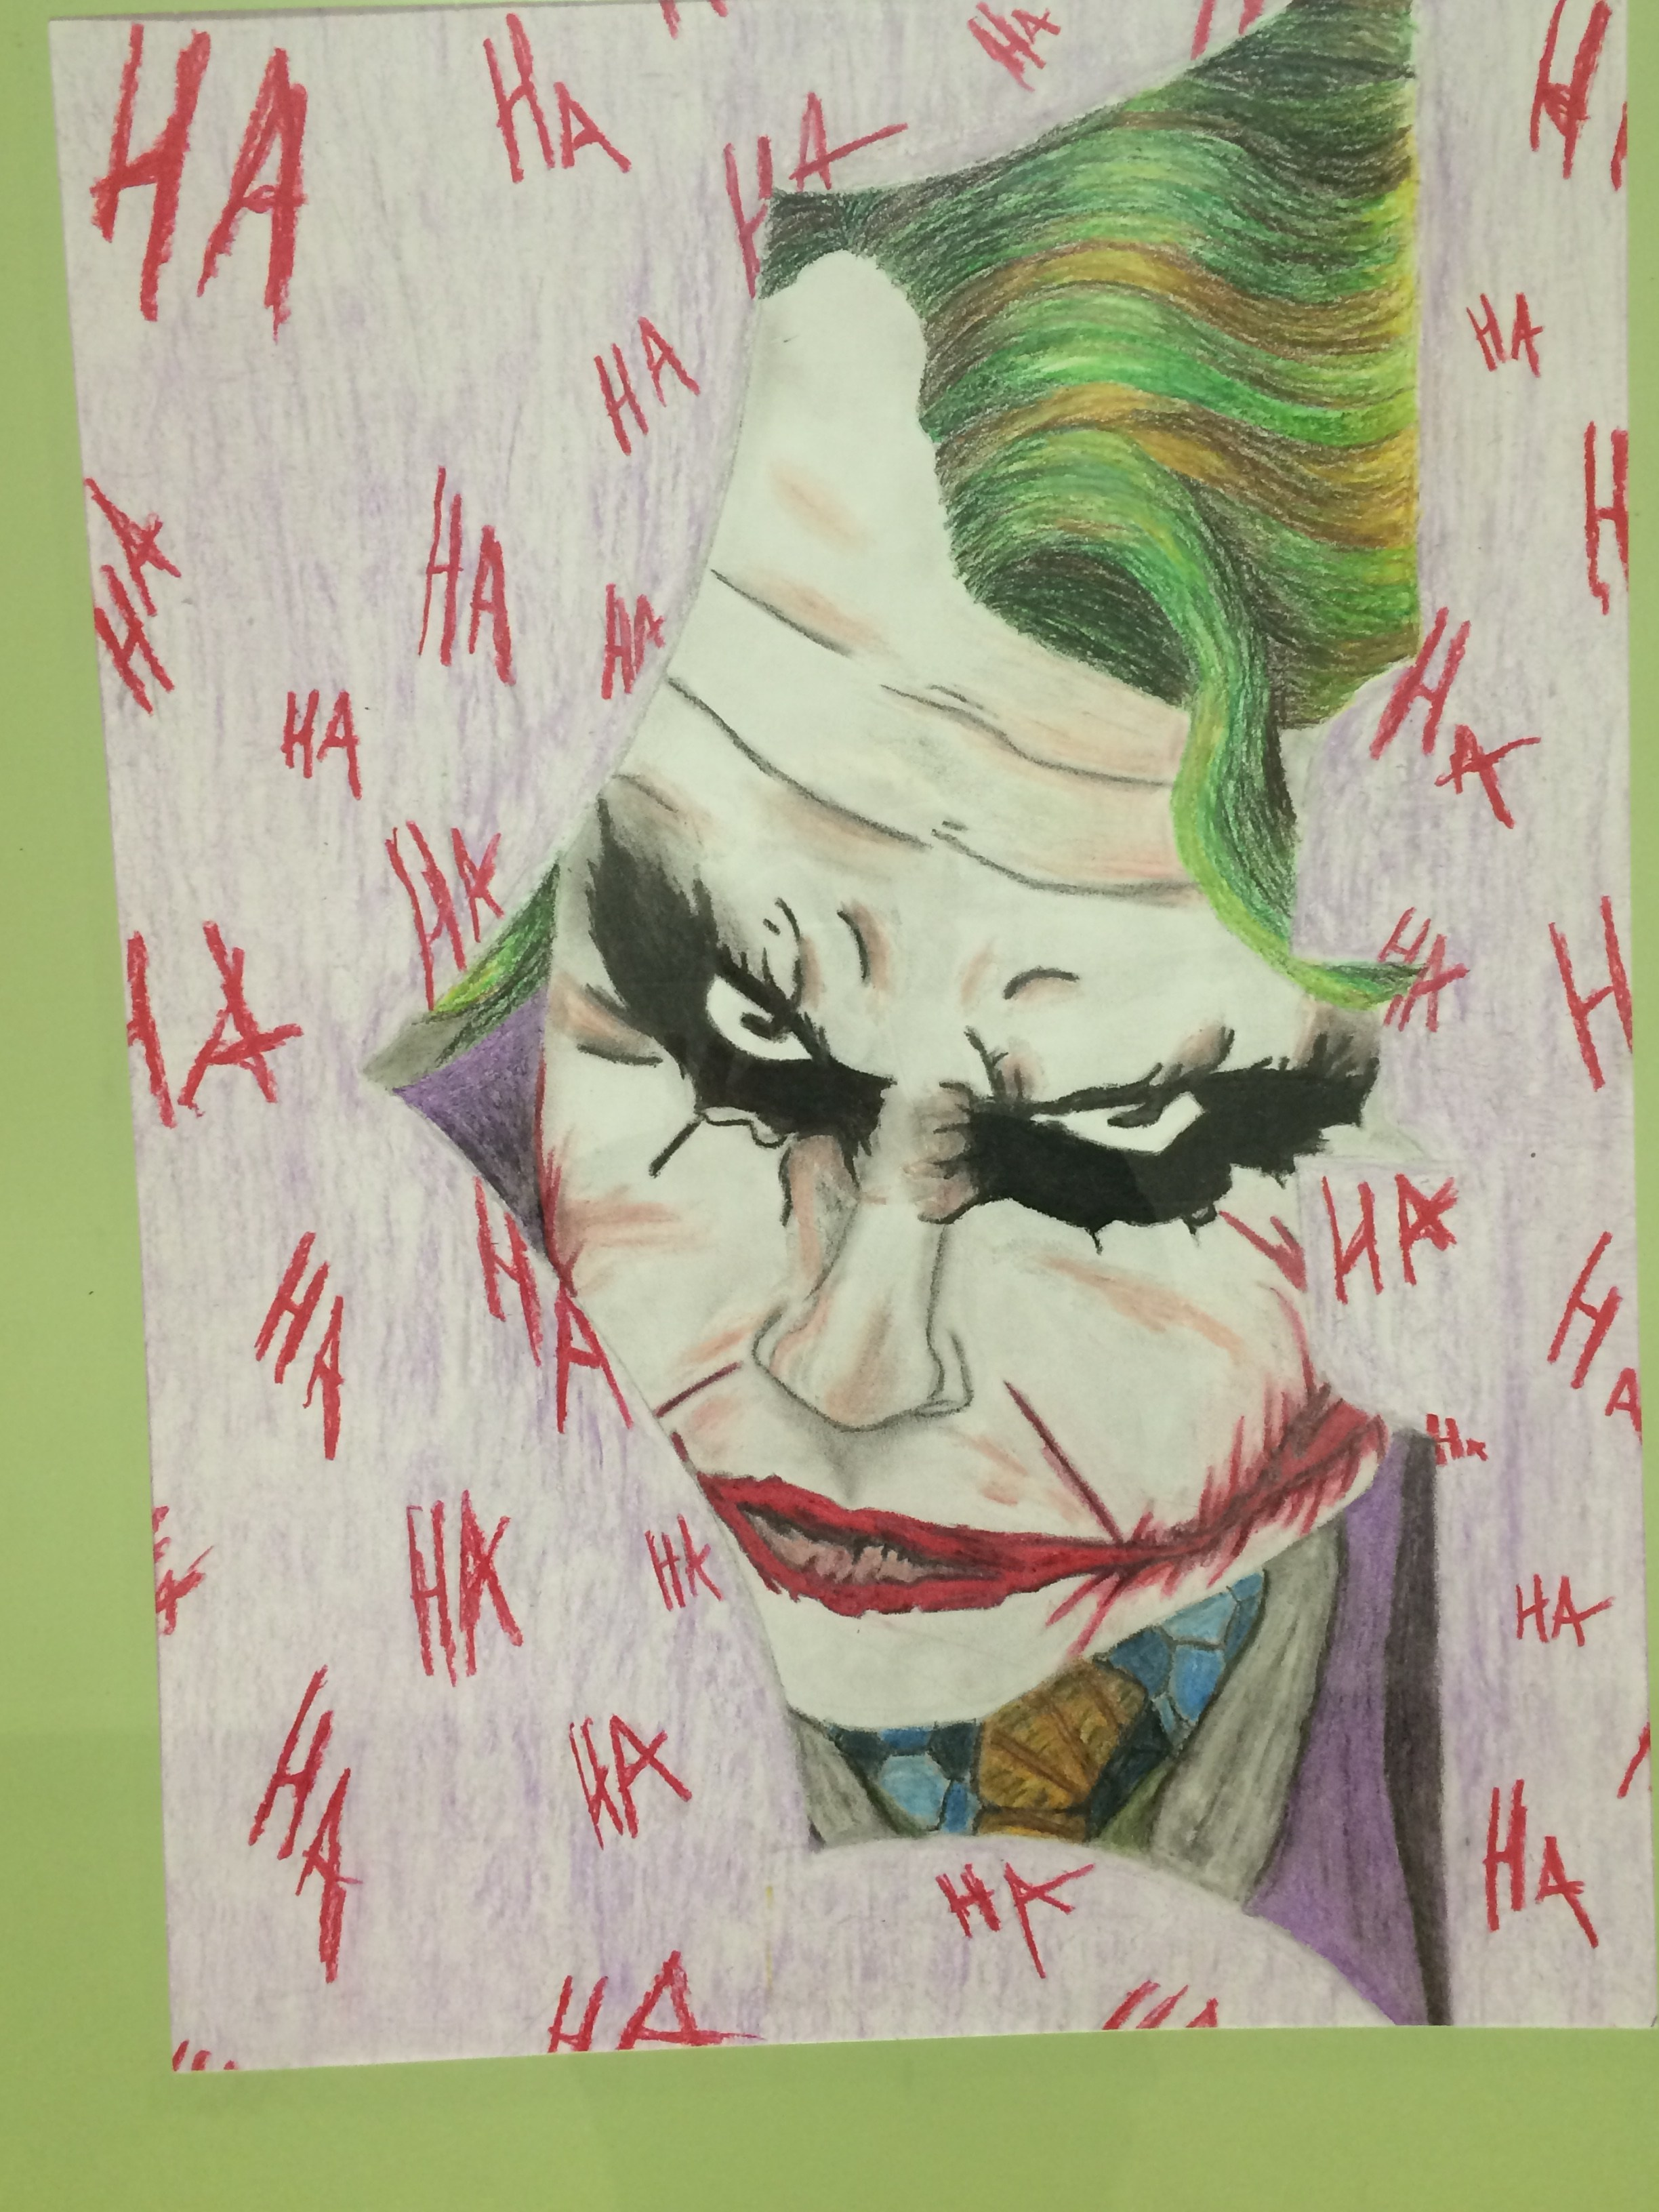 art student's joker from batman